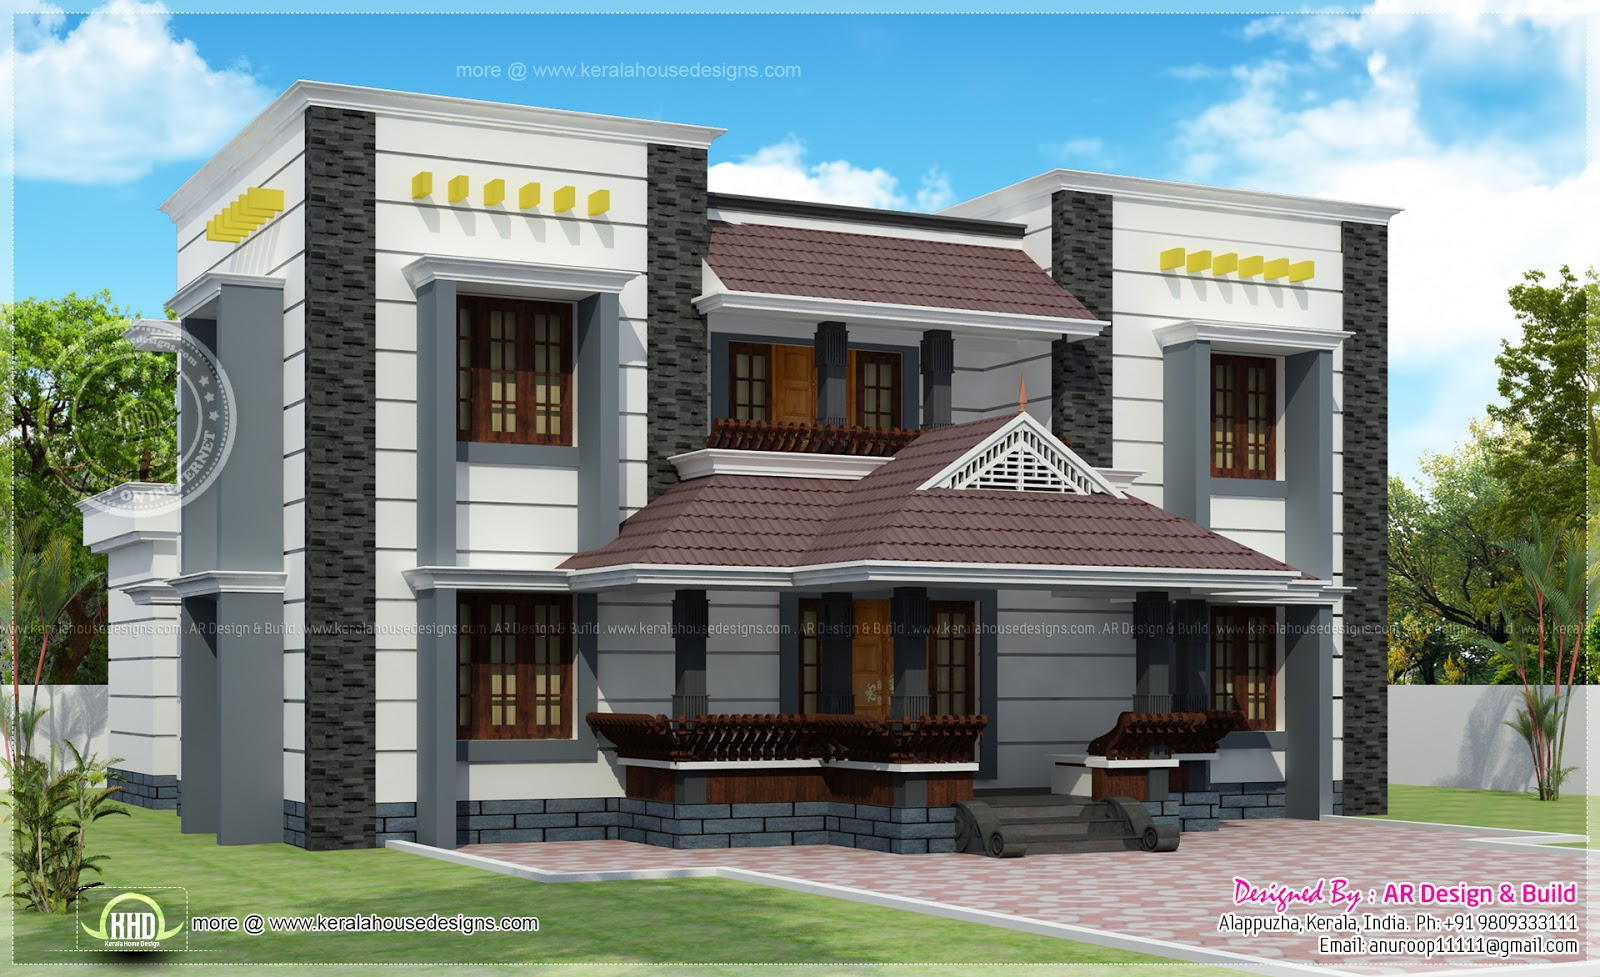 Kerala traditional mix residence elevation kerala home for Traditional home designs